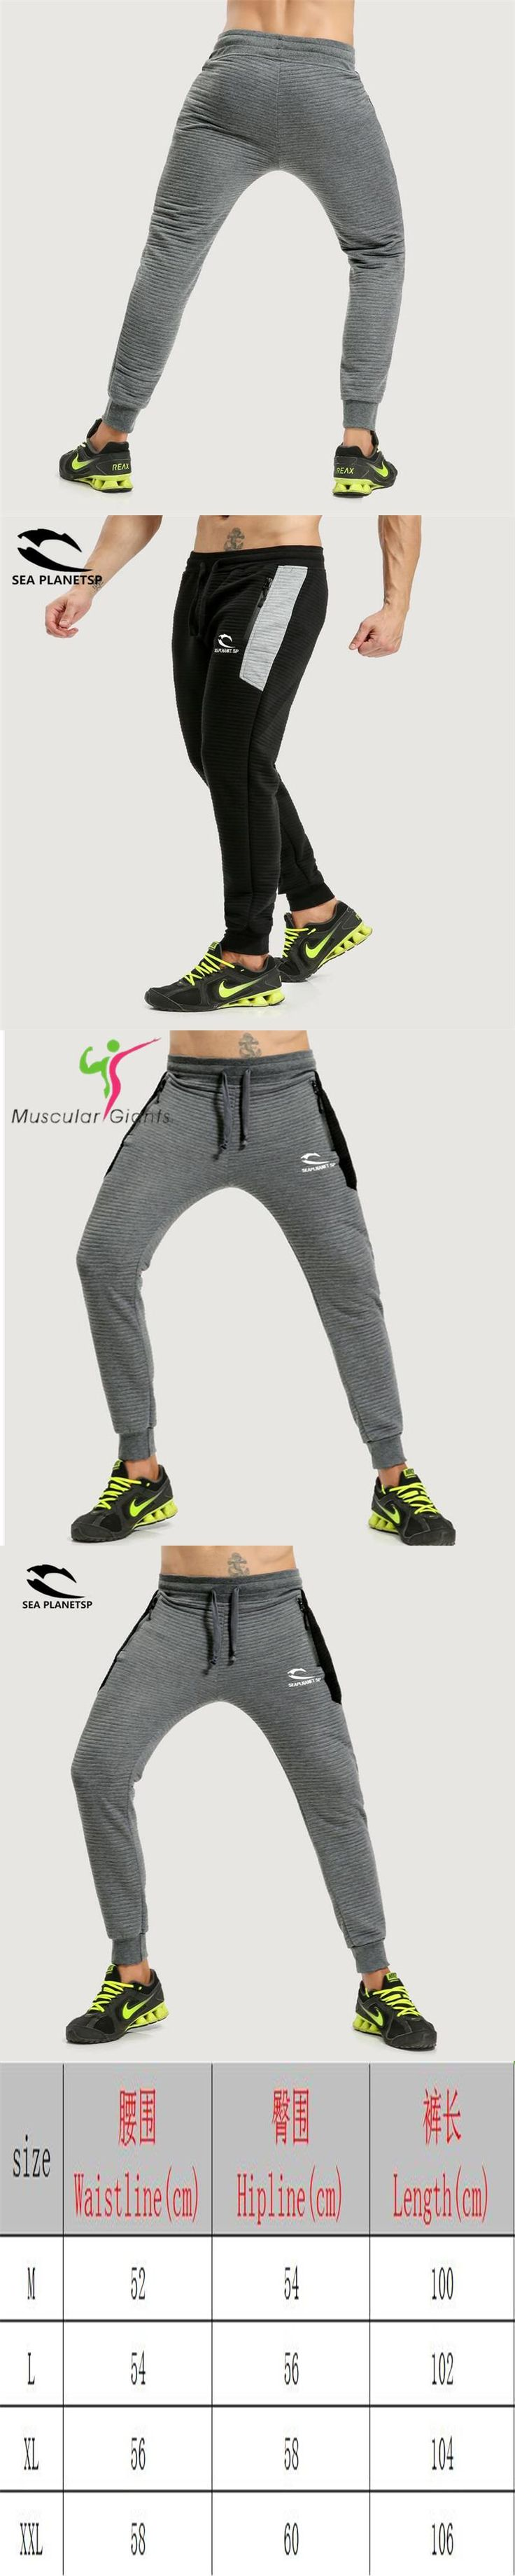 2017 Bodyboulding Mens Gyms Pants Brand Clothing Splice Cotton Trousers Professional Fitness Jogger Sweatpants Men High Quality